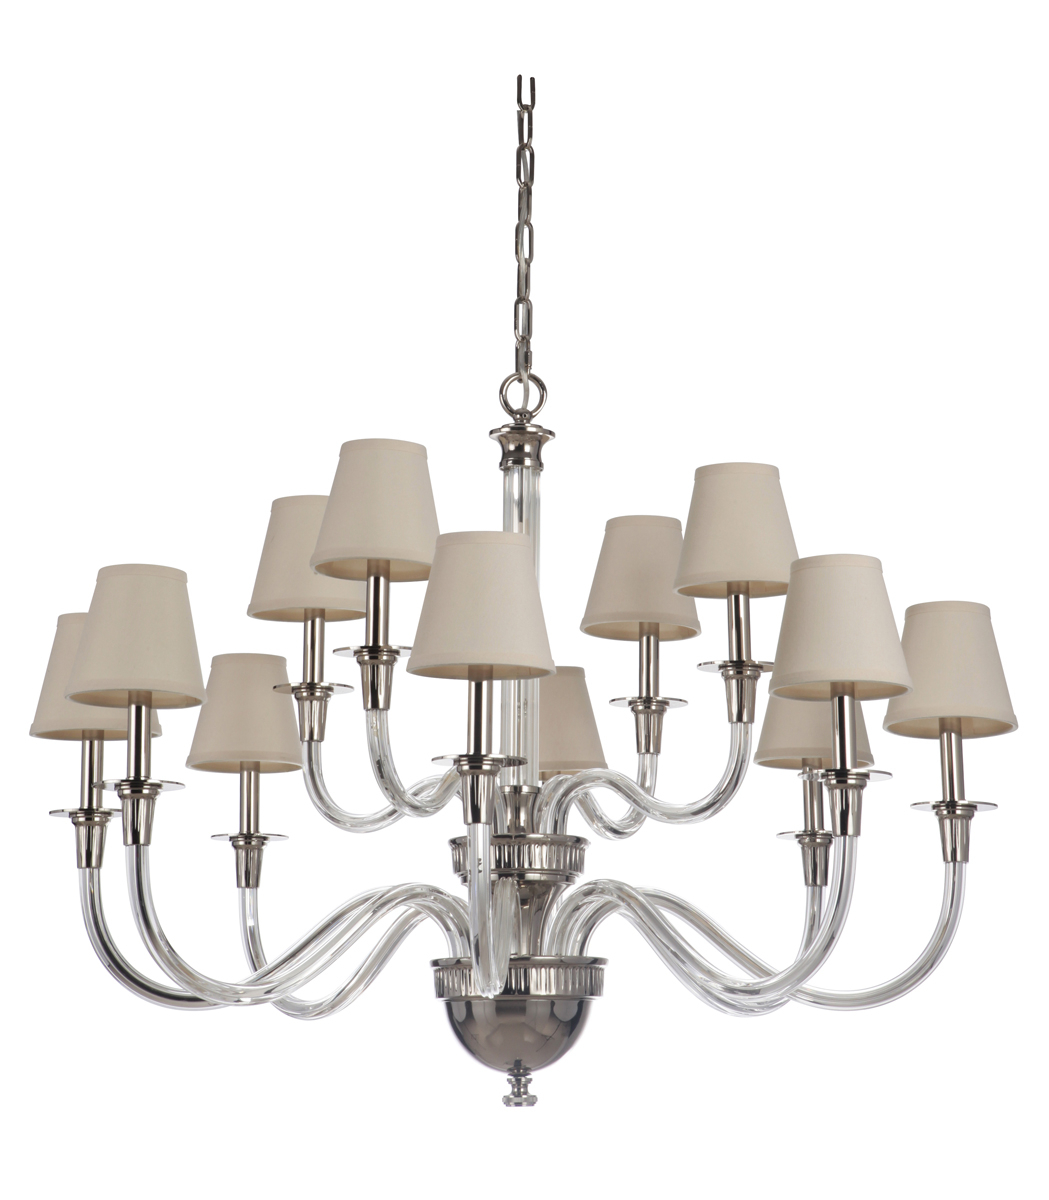 Deran Chandelier In Polished Nickel Regarding Corona 12 Light Sputnik Chandeliers (View 24 of 30)